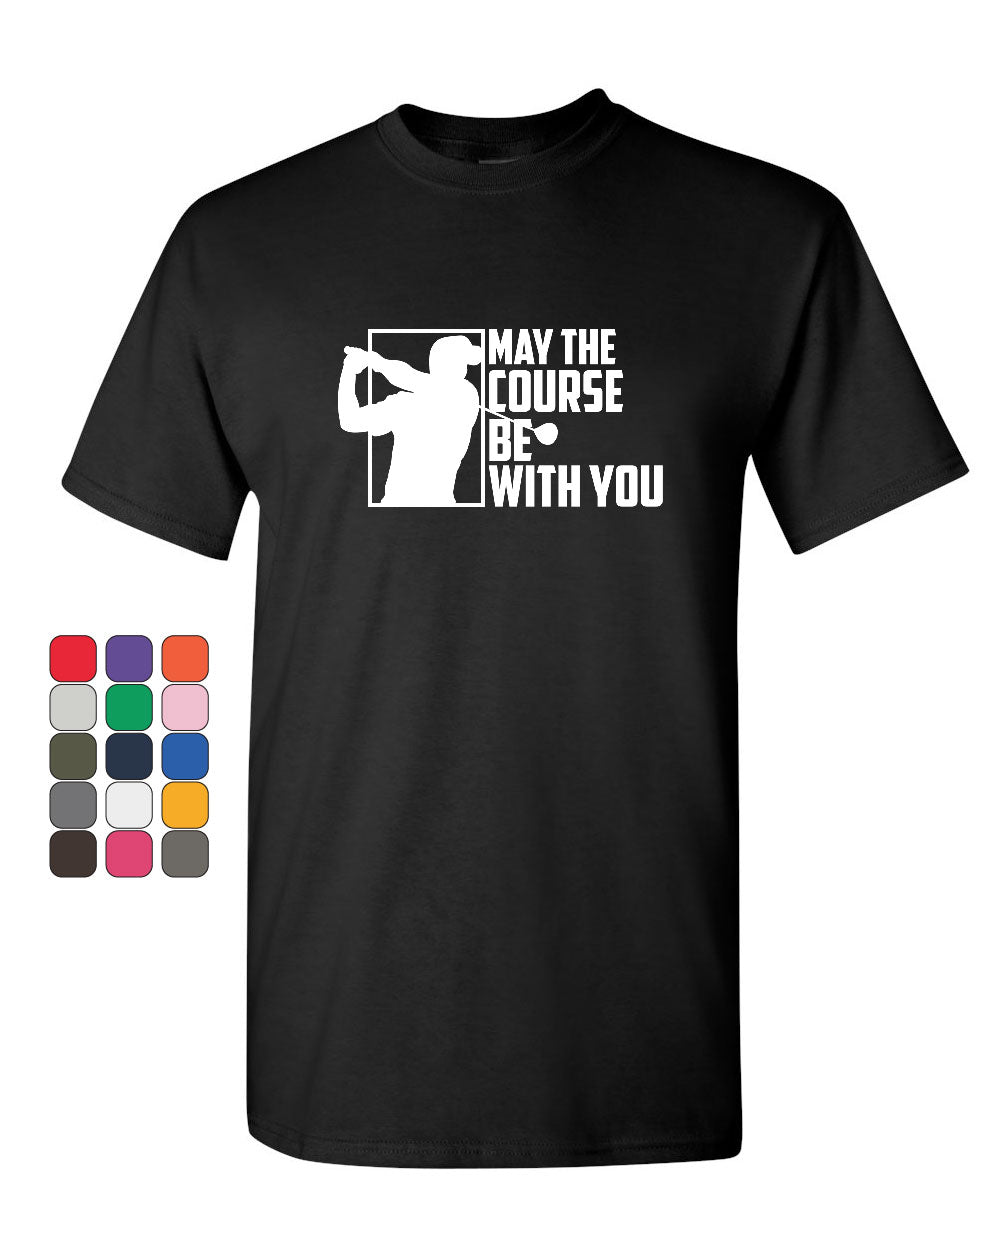 18c19d49 May the Course Be with You T-Shirt Funny Golf Club Golfing Fan Mens Tee  Shirt